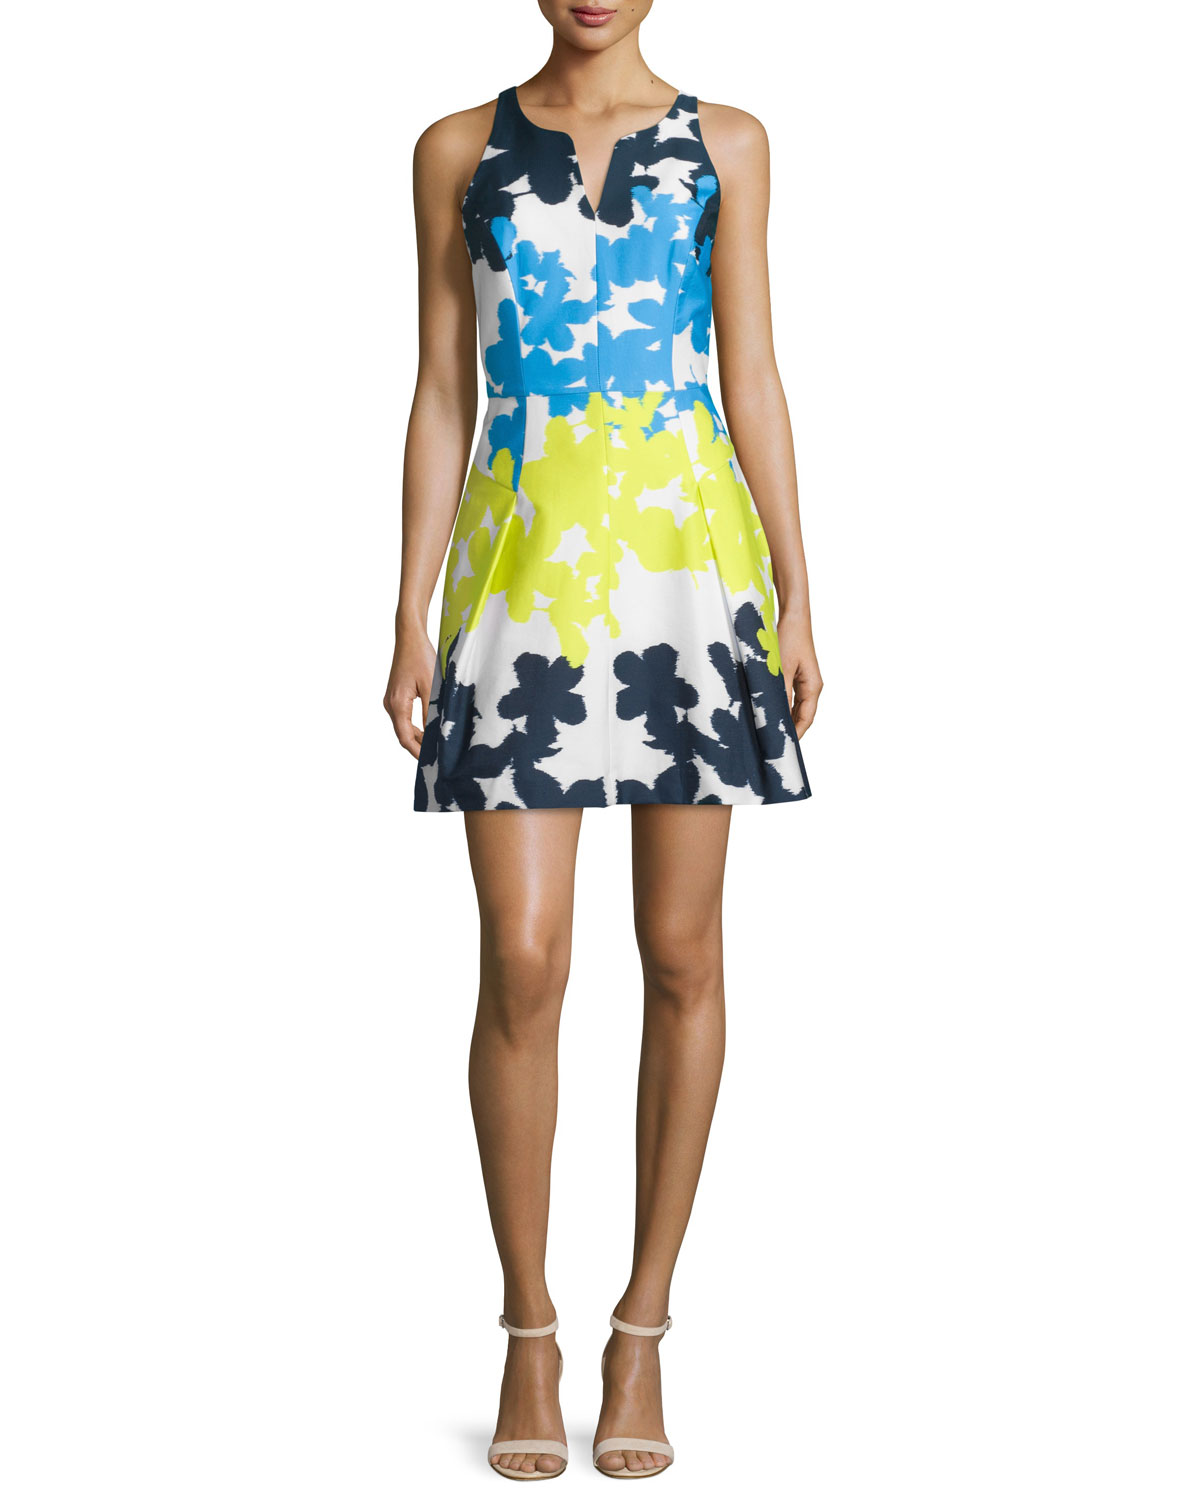 Floral-Print Fit-&-Flare Dress, Multi Colors, Size: 0 - Milly